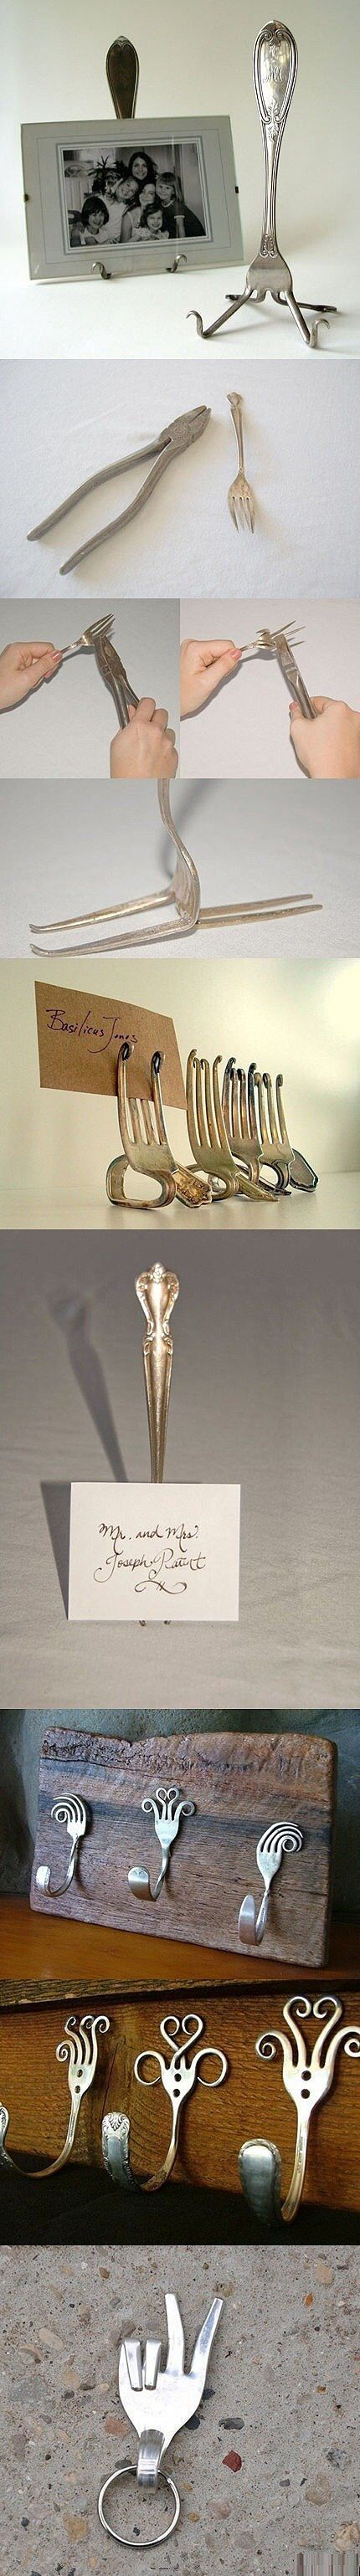 Fork in a different role